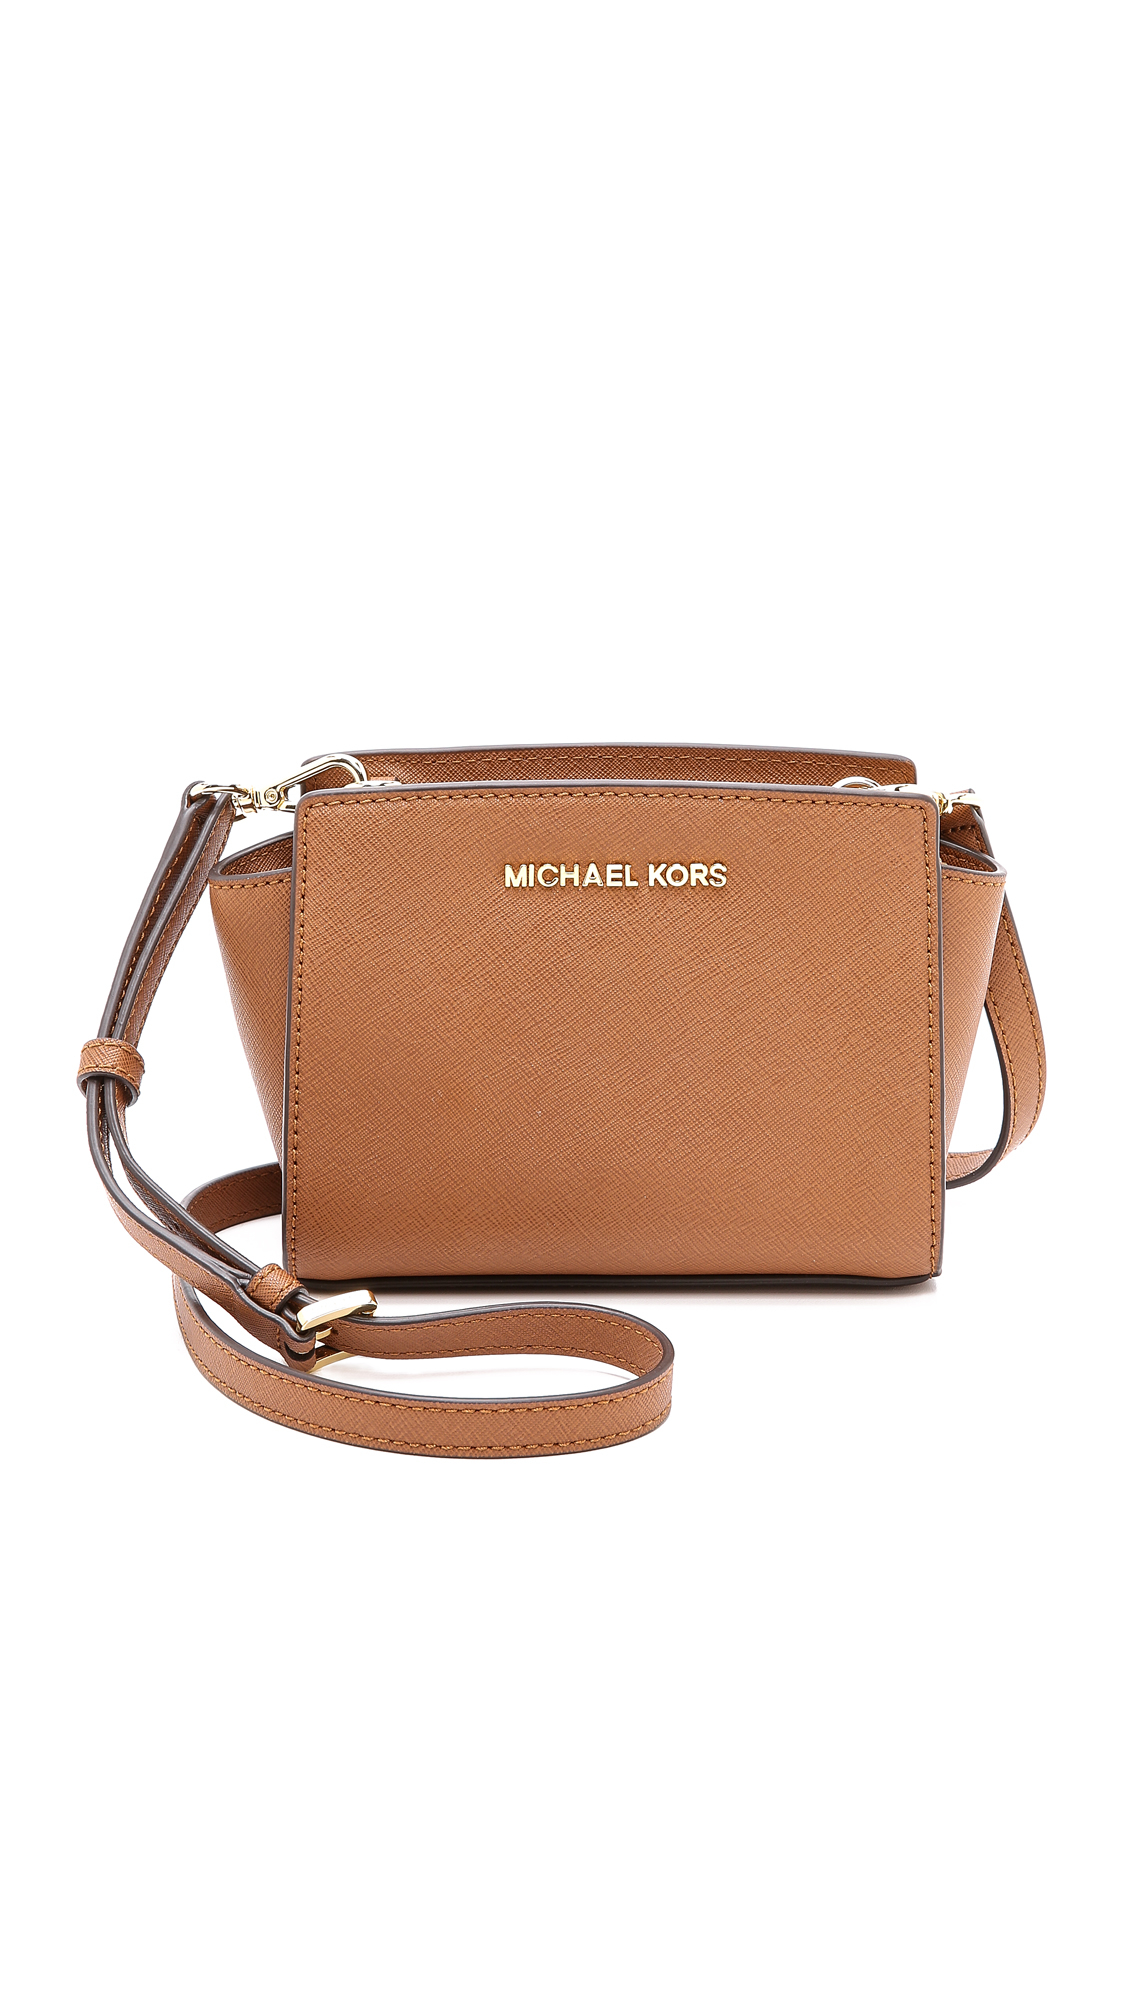 6a39441708ac Gallery. Previously sold at  Shopbop · Women s Leather Messenger Bags  Women s Michael By Michael Kors Selma ...